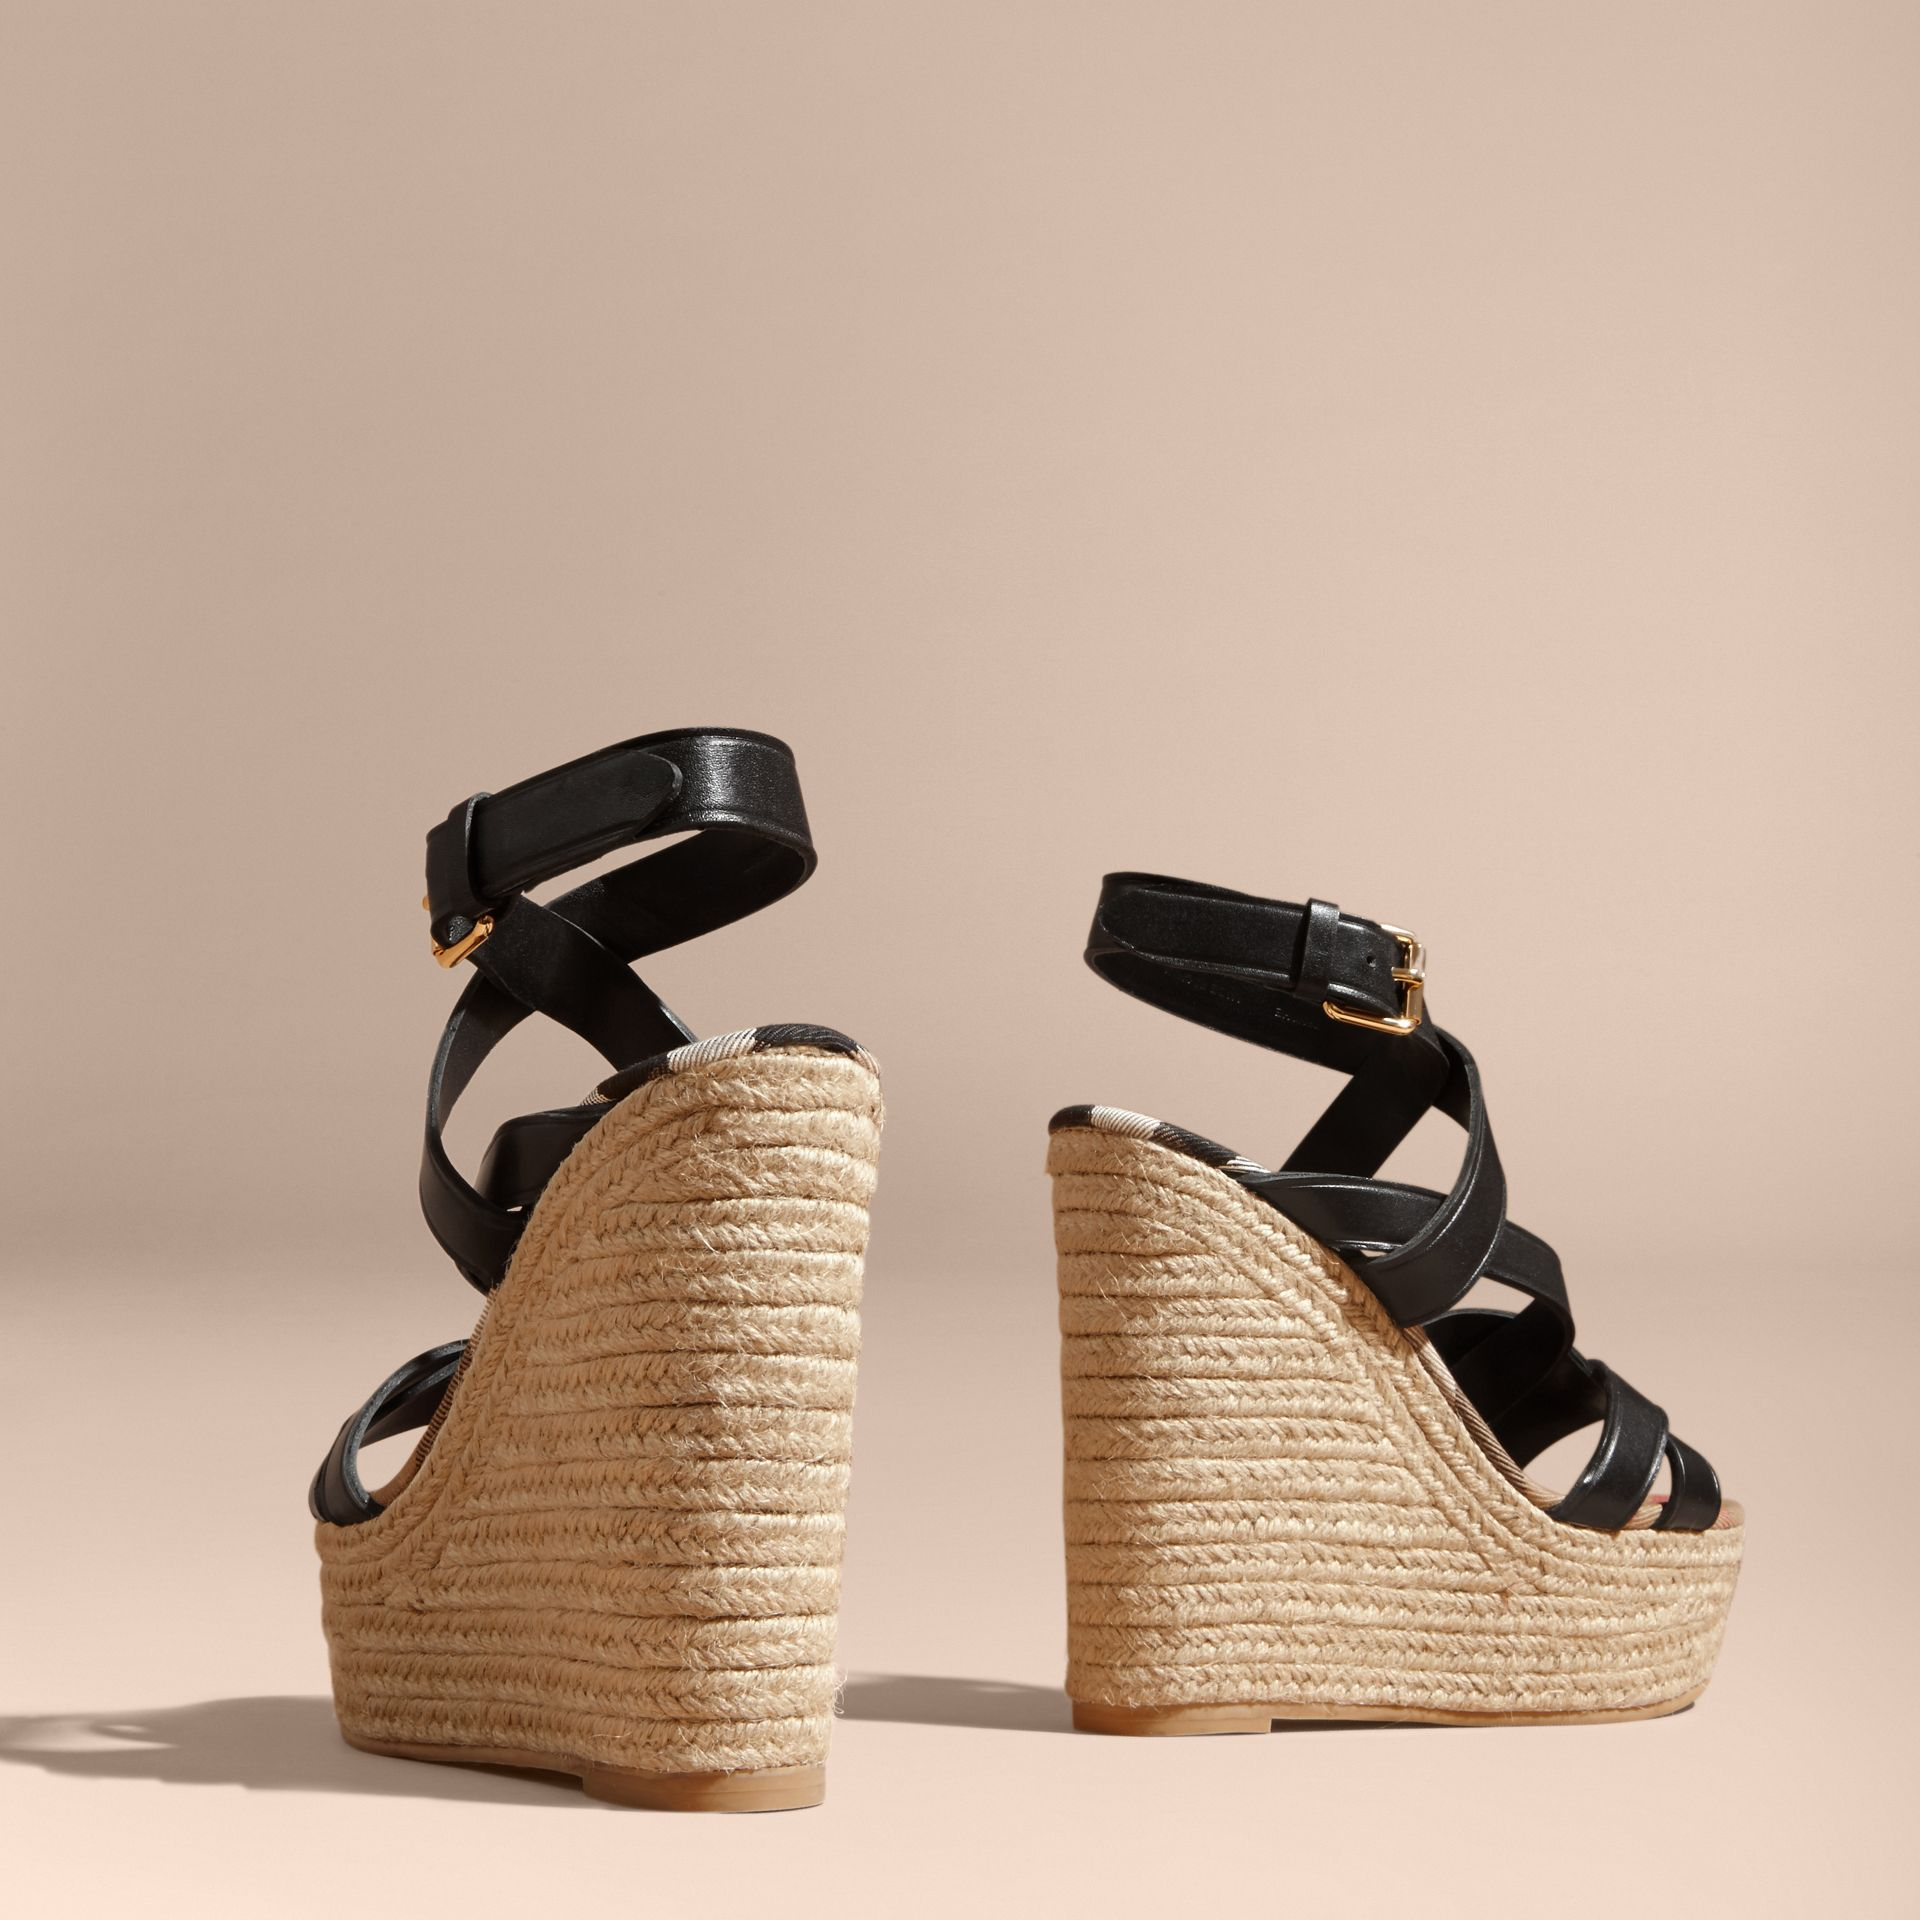 Leather Platform Espadrille Wedge Sandals in Black - Women | Burberry Canada - gallery image 5